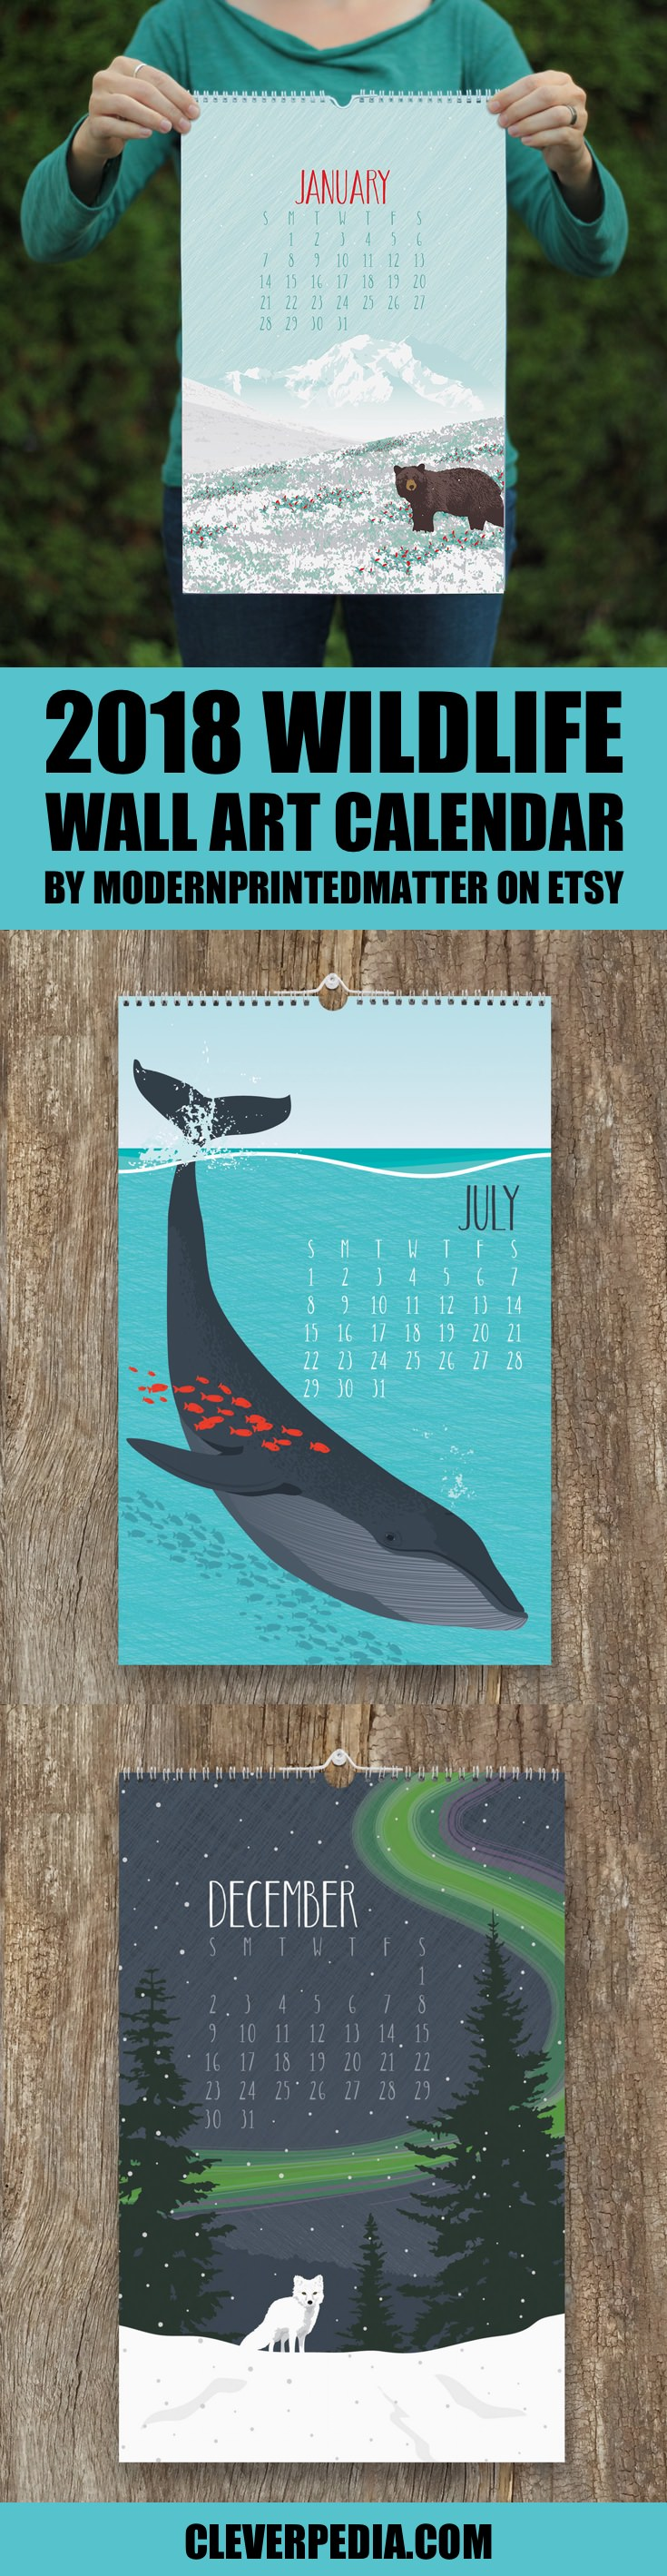 Looking for a handmade alternative to Paper Source and Rifle Paper Co.'s wall art calendars? I like this calendar by ModernPrintedMatter on Etsy, which features a variety of wildlife in their native environments. The animals included are grizzly bears, polar bears, sea otters, piping plover, gray wolf, desert tortoise, blue whale, Florida panther, midwestern moose, Indiana bat, spotted owl, and arctic fox.